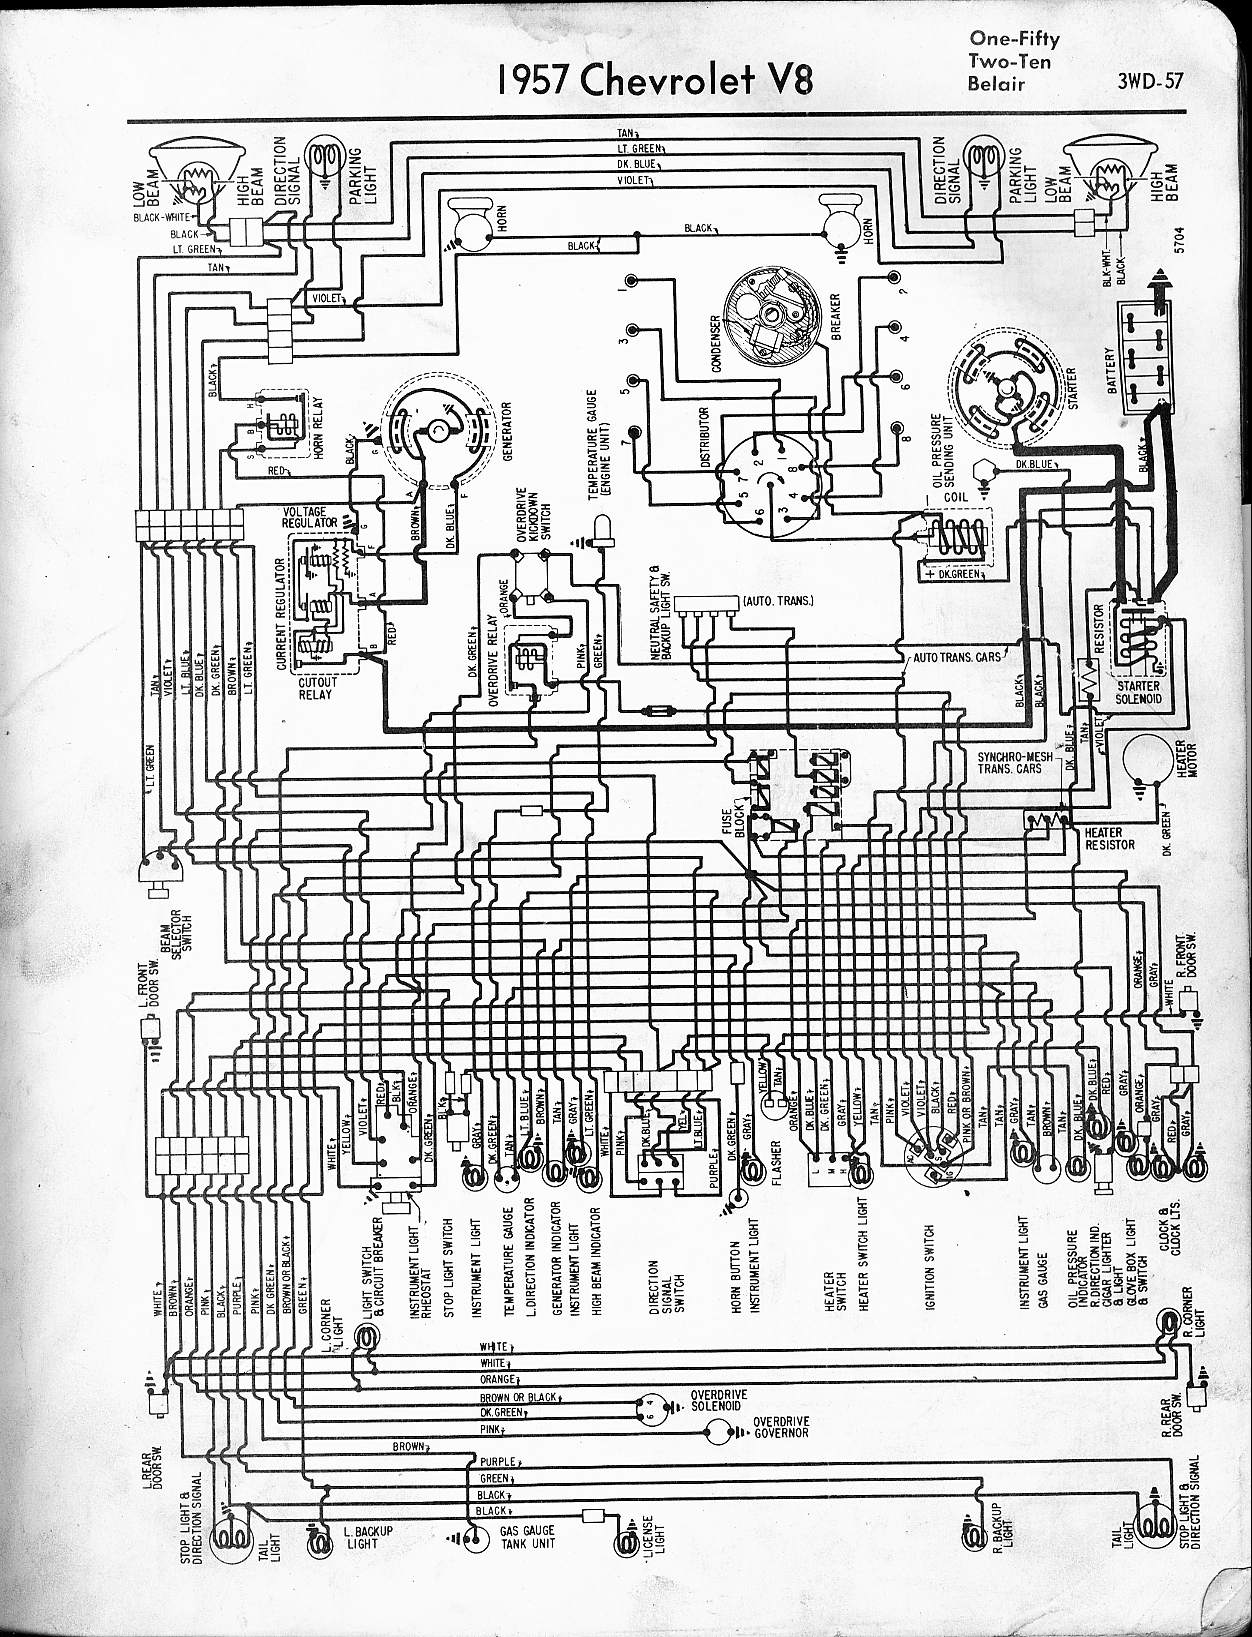 MWireChev57_3WD 057 neutral safety switch, 57 powerglide trifive com, 1955 chevy 55 chevy headlight switch wiring diagram at honlapkeszites.co